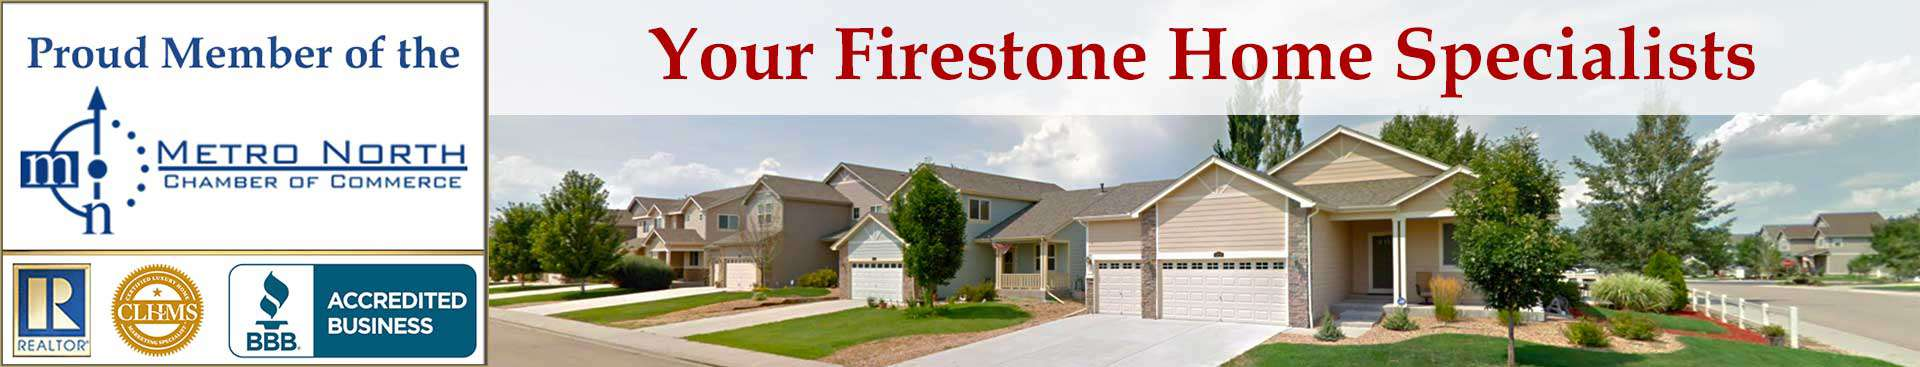 Firestone CO Organizational Banner